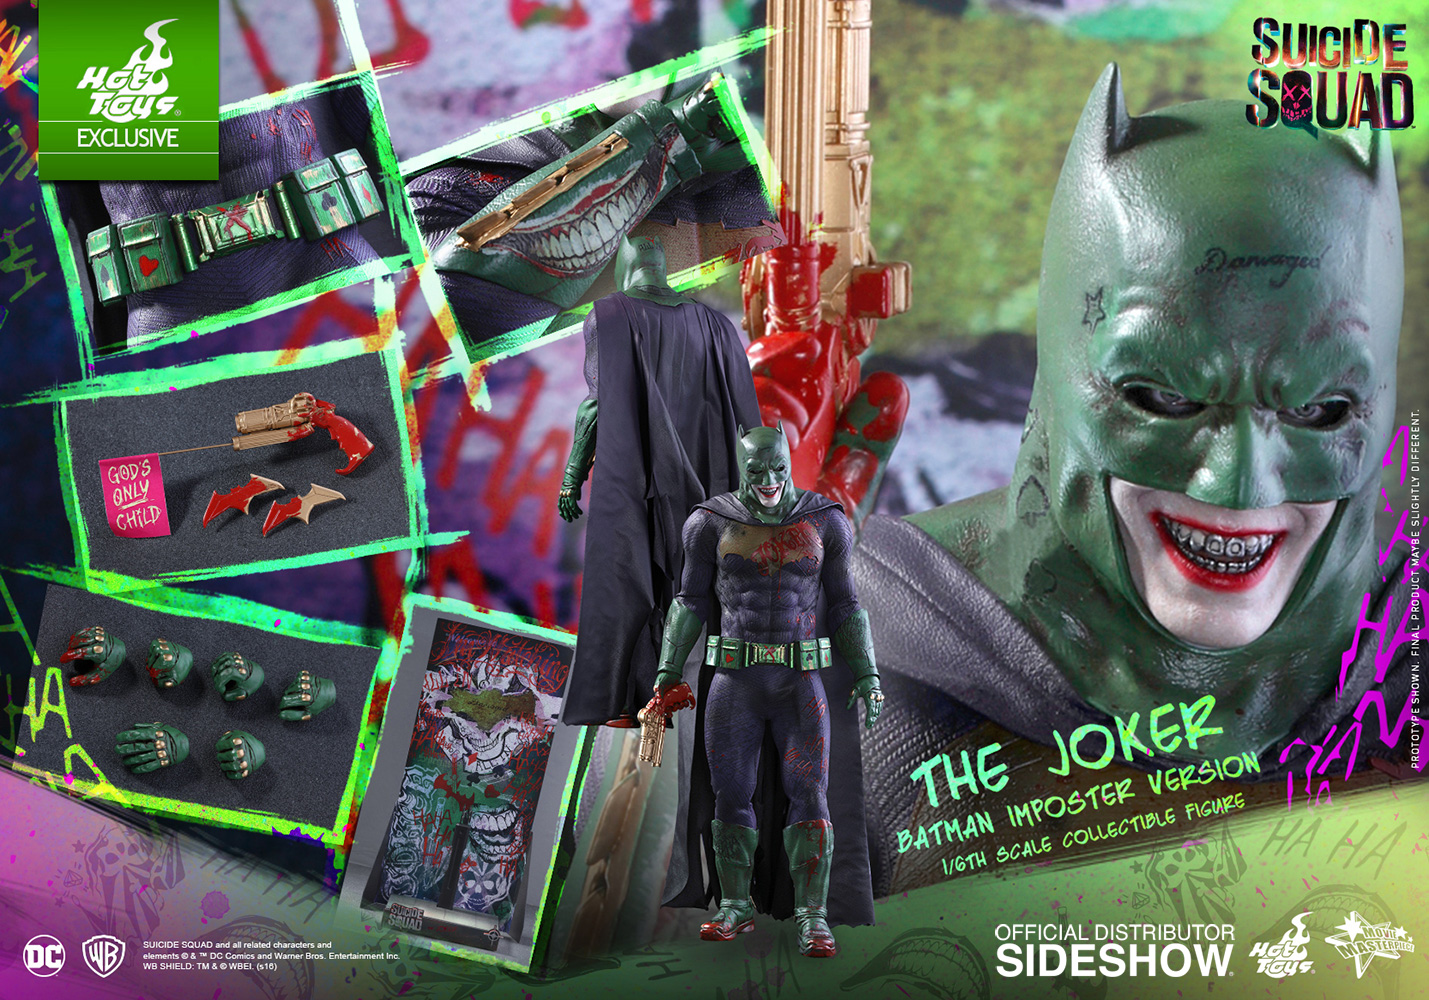 The Joker Batman Imposter Version Sixth Scale Figure by Hot Toys Giveaway Image